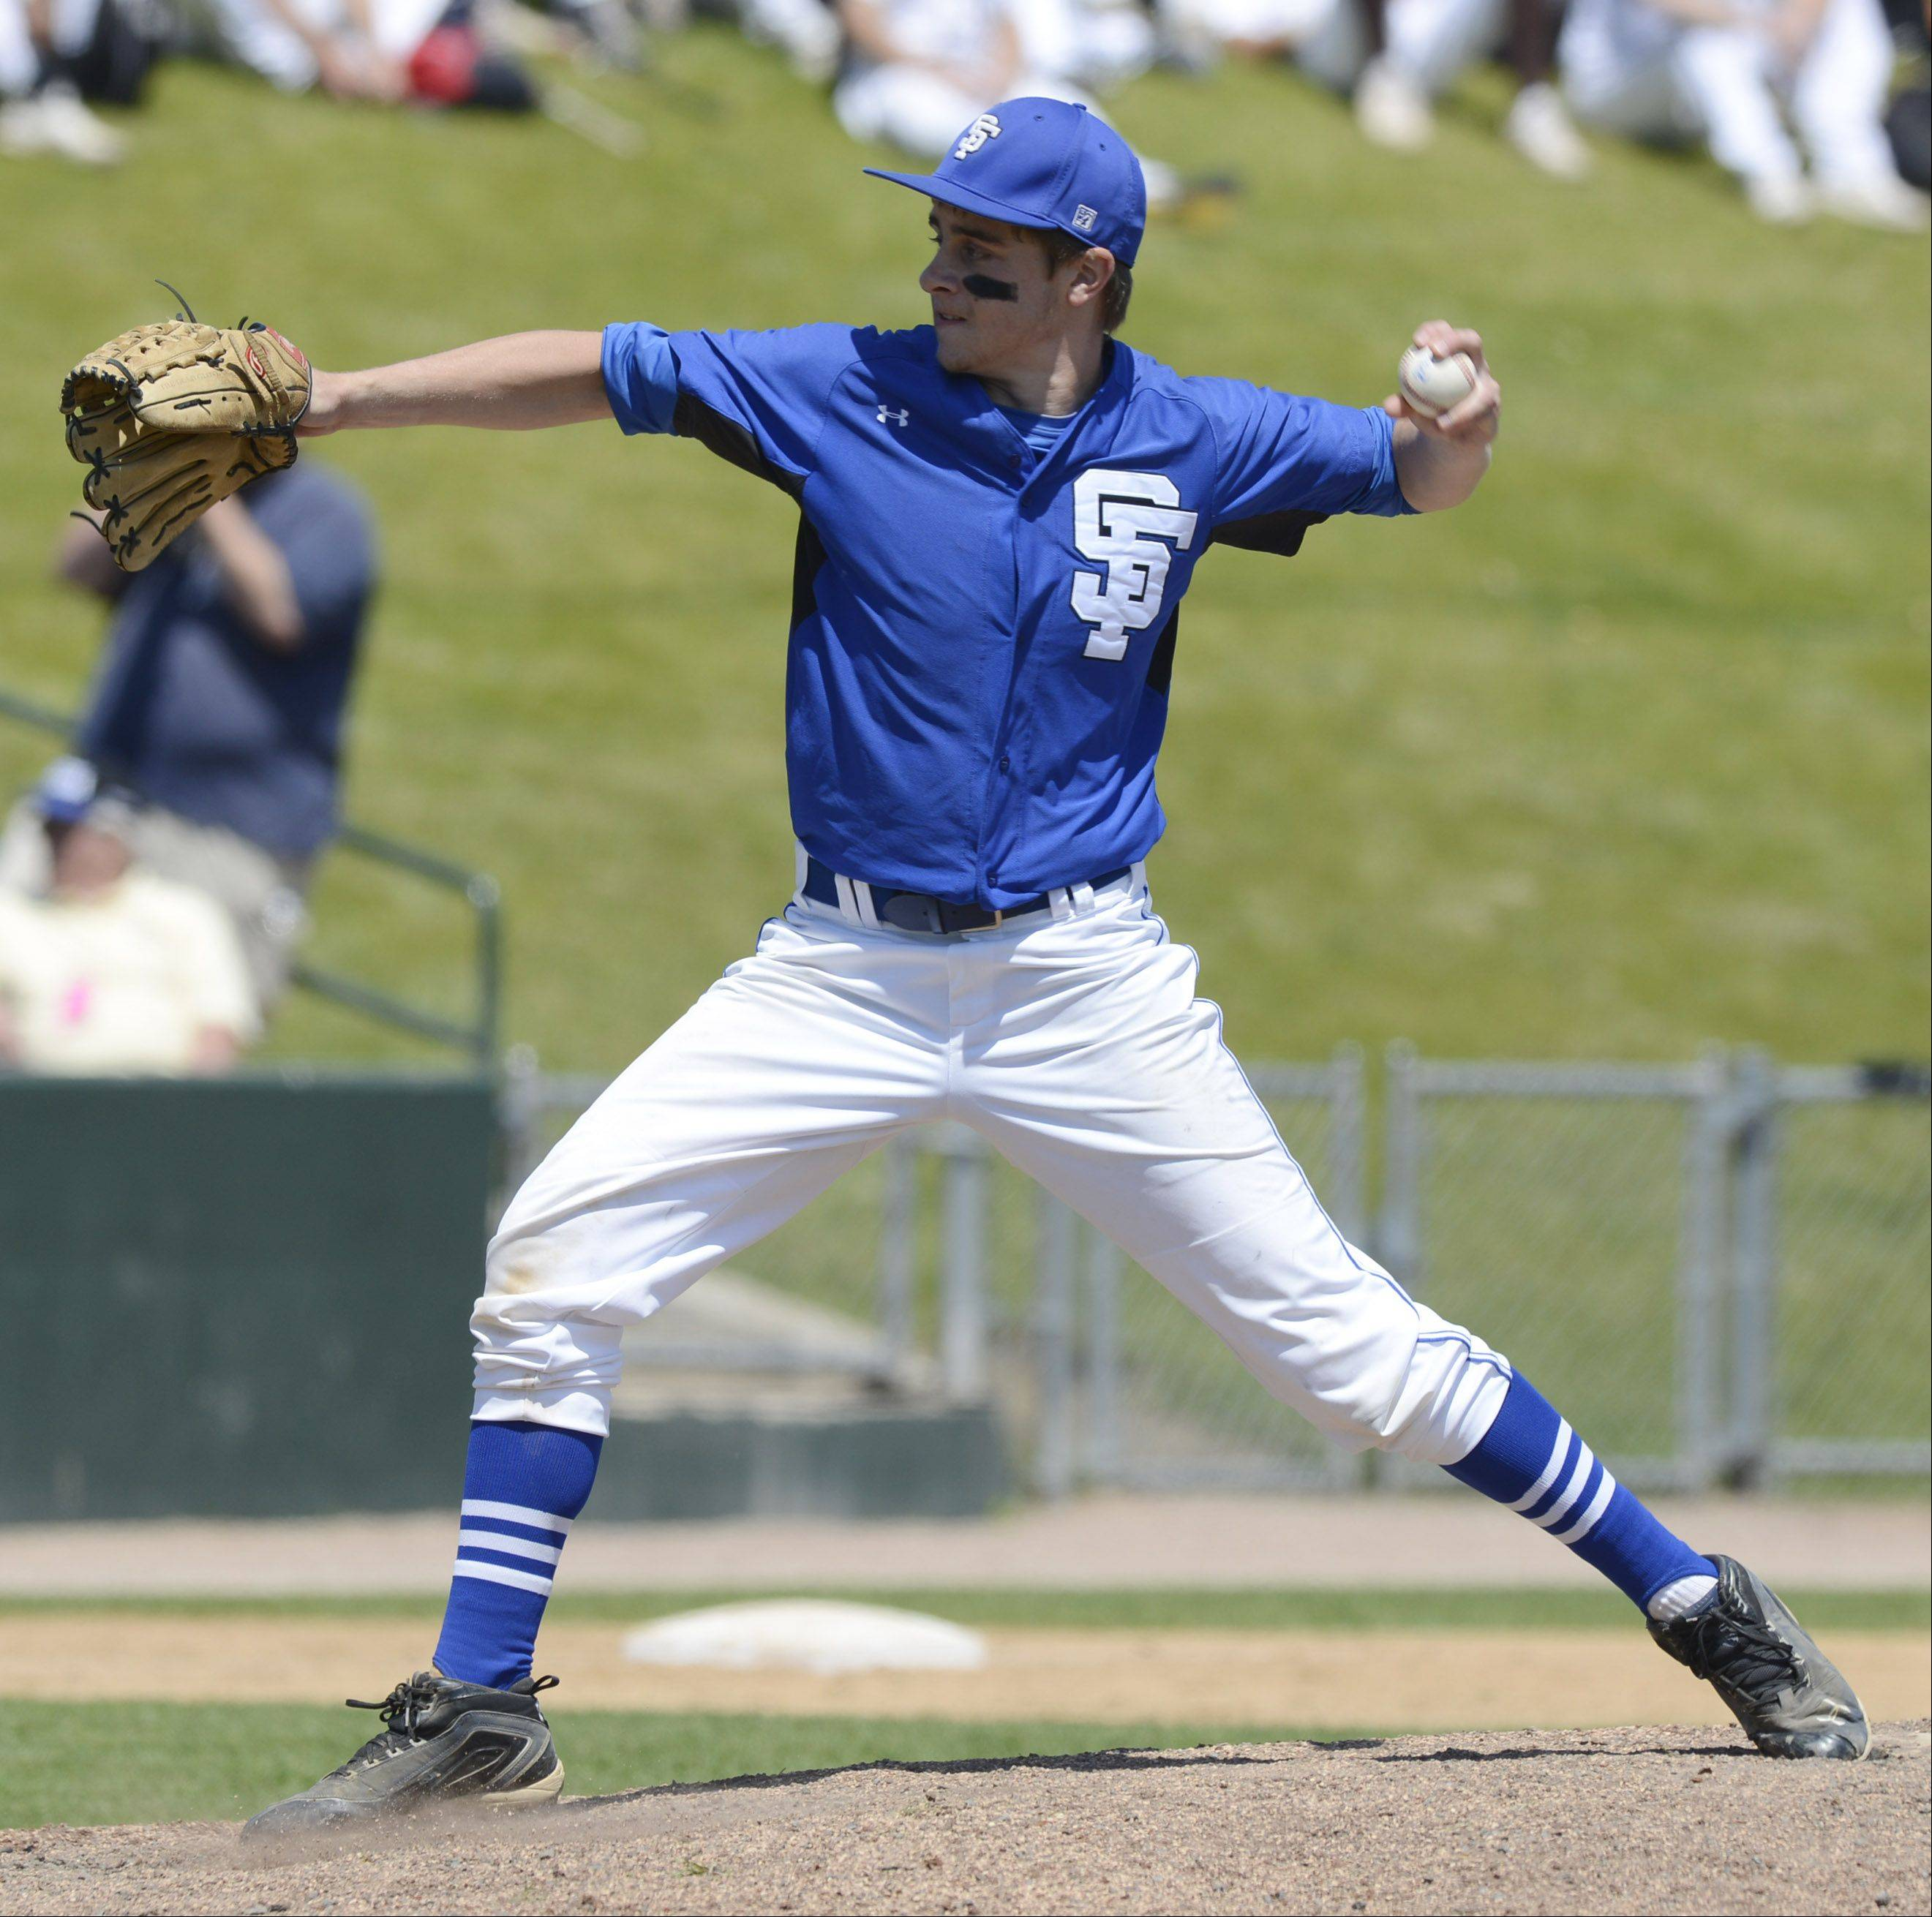 St. Francis relief pitcher Andrew Brundage deivers during the Class 3A state baseball semifinal against Grayslake Central at Silver Cross Field in Joliet on Friday.